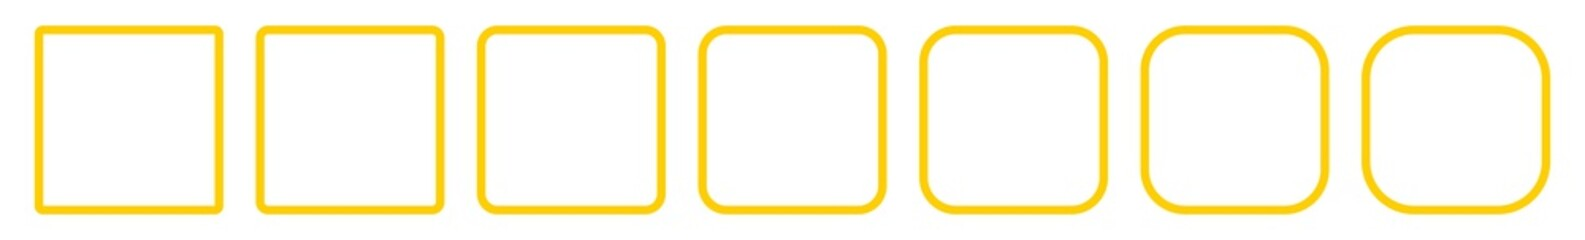 Square Icon Yellow | Round Squares | Foursquare Symbol | Frame Logo | Button Sign | Isolated | Variations Fotomurales